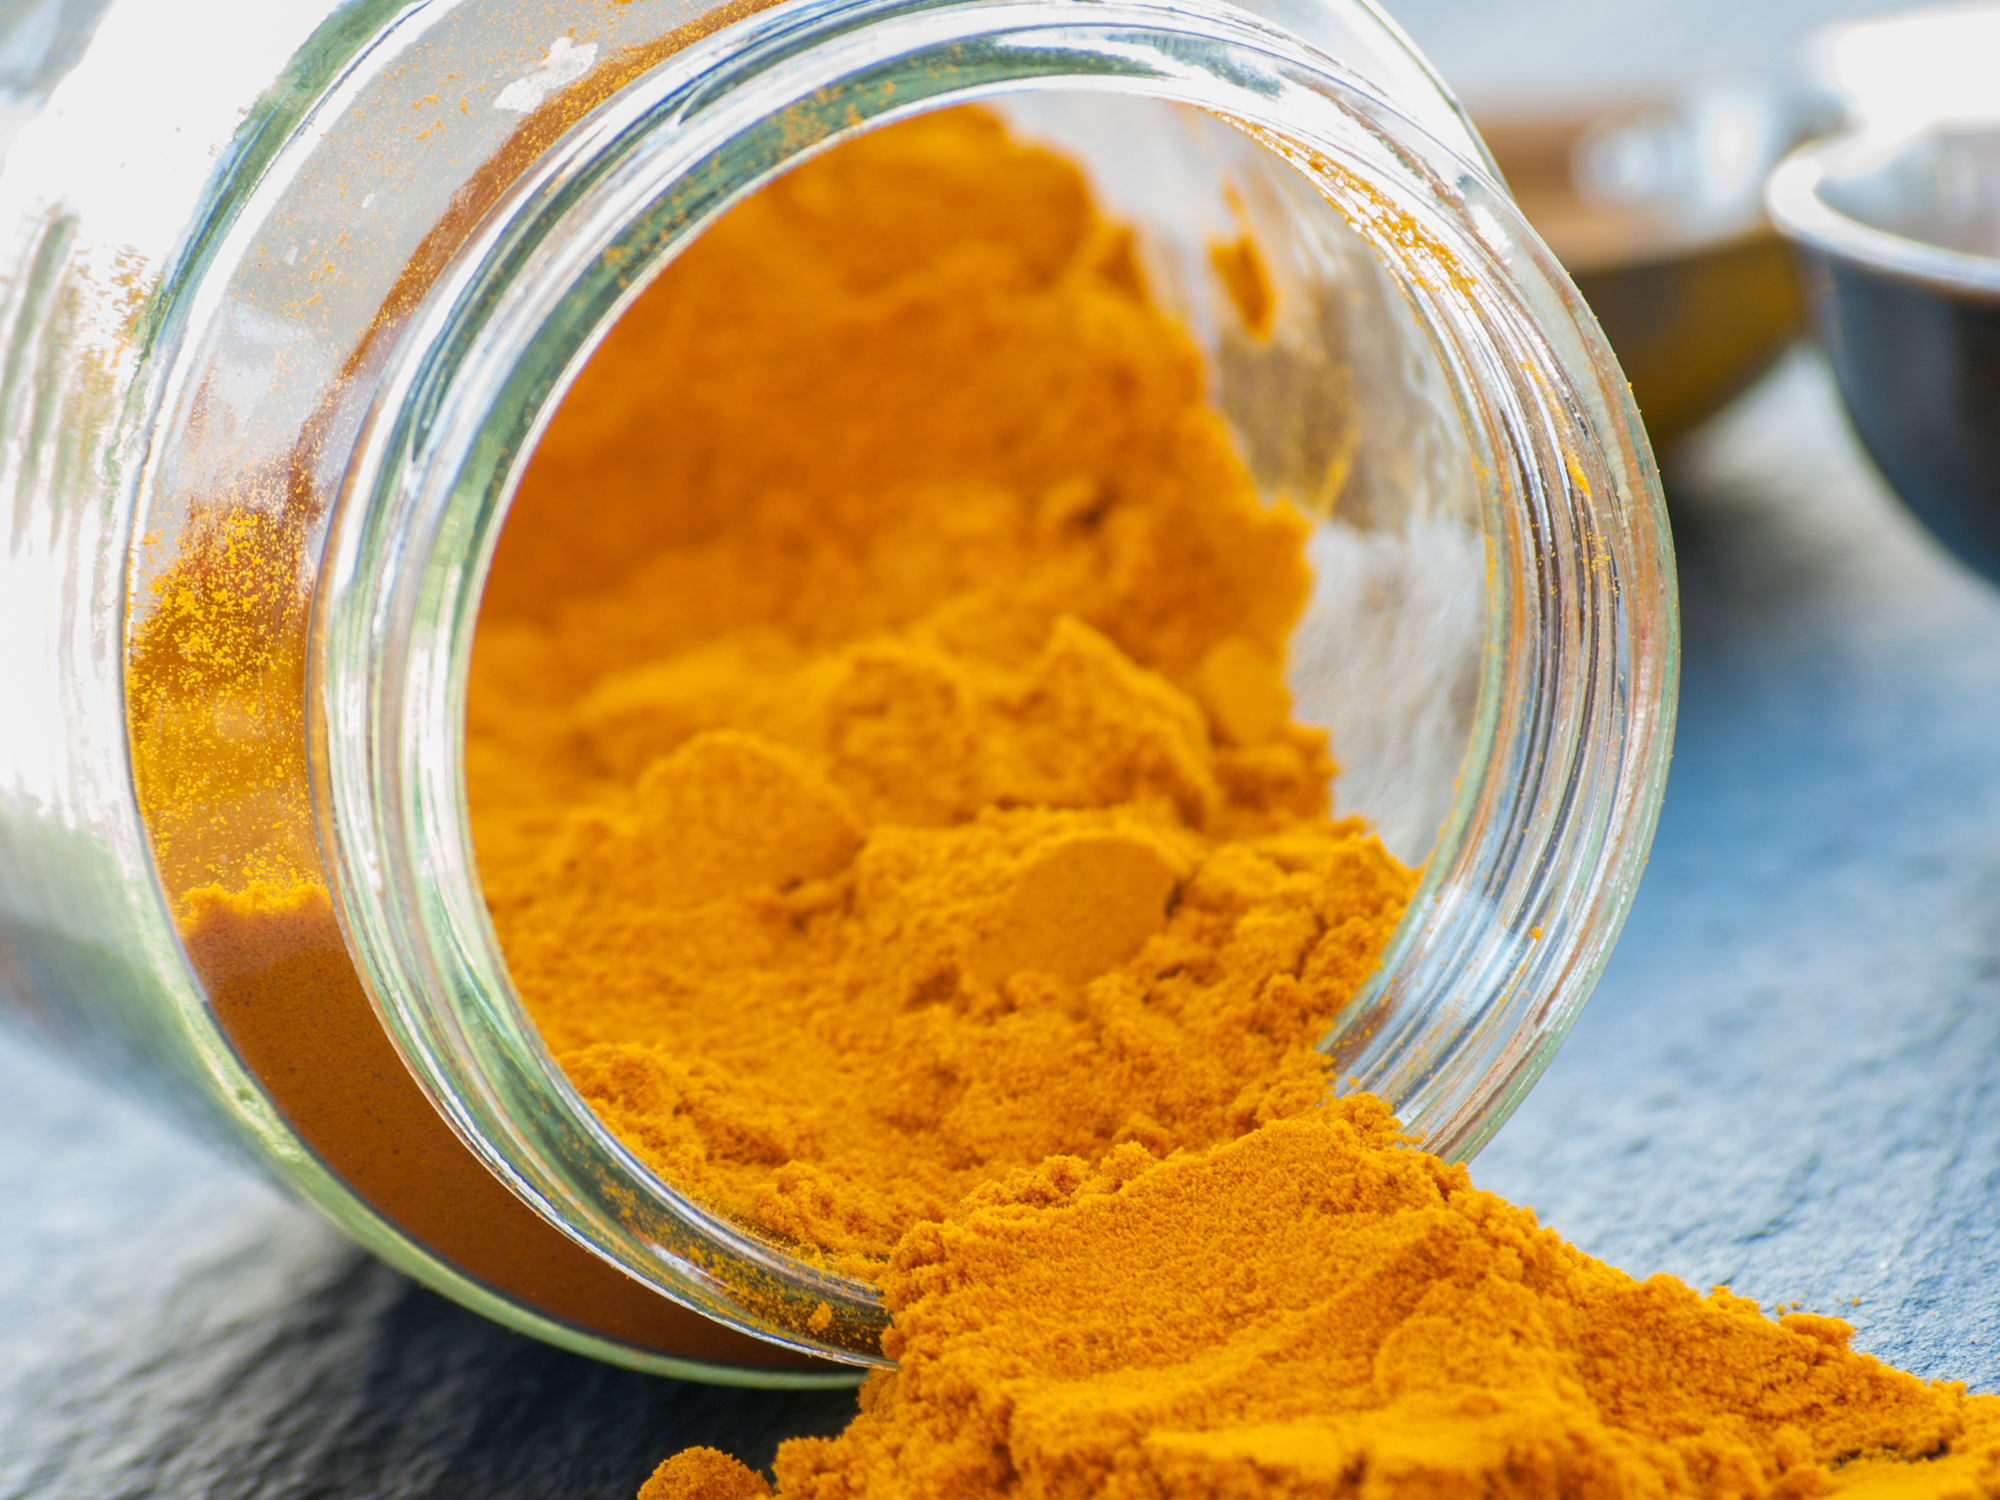 The best spice for beauty and brains